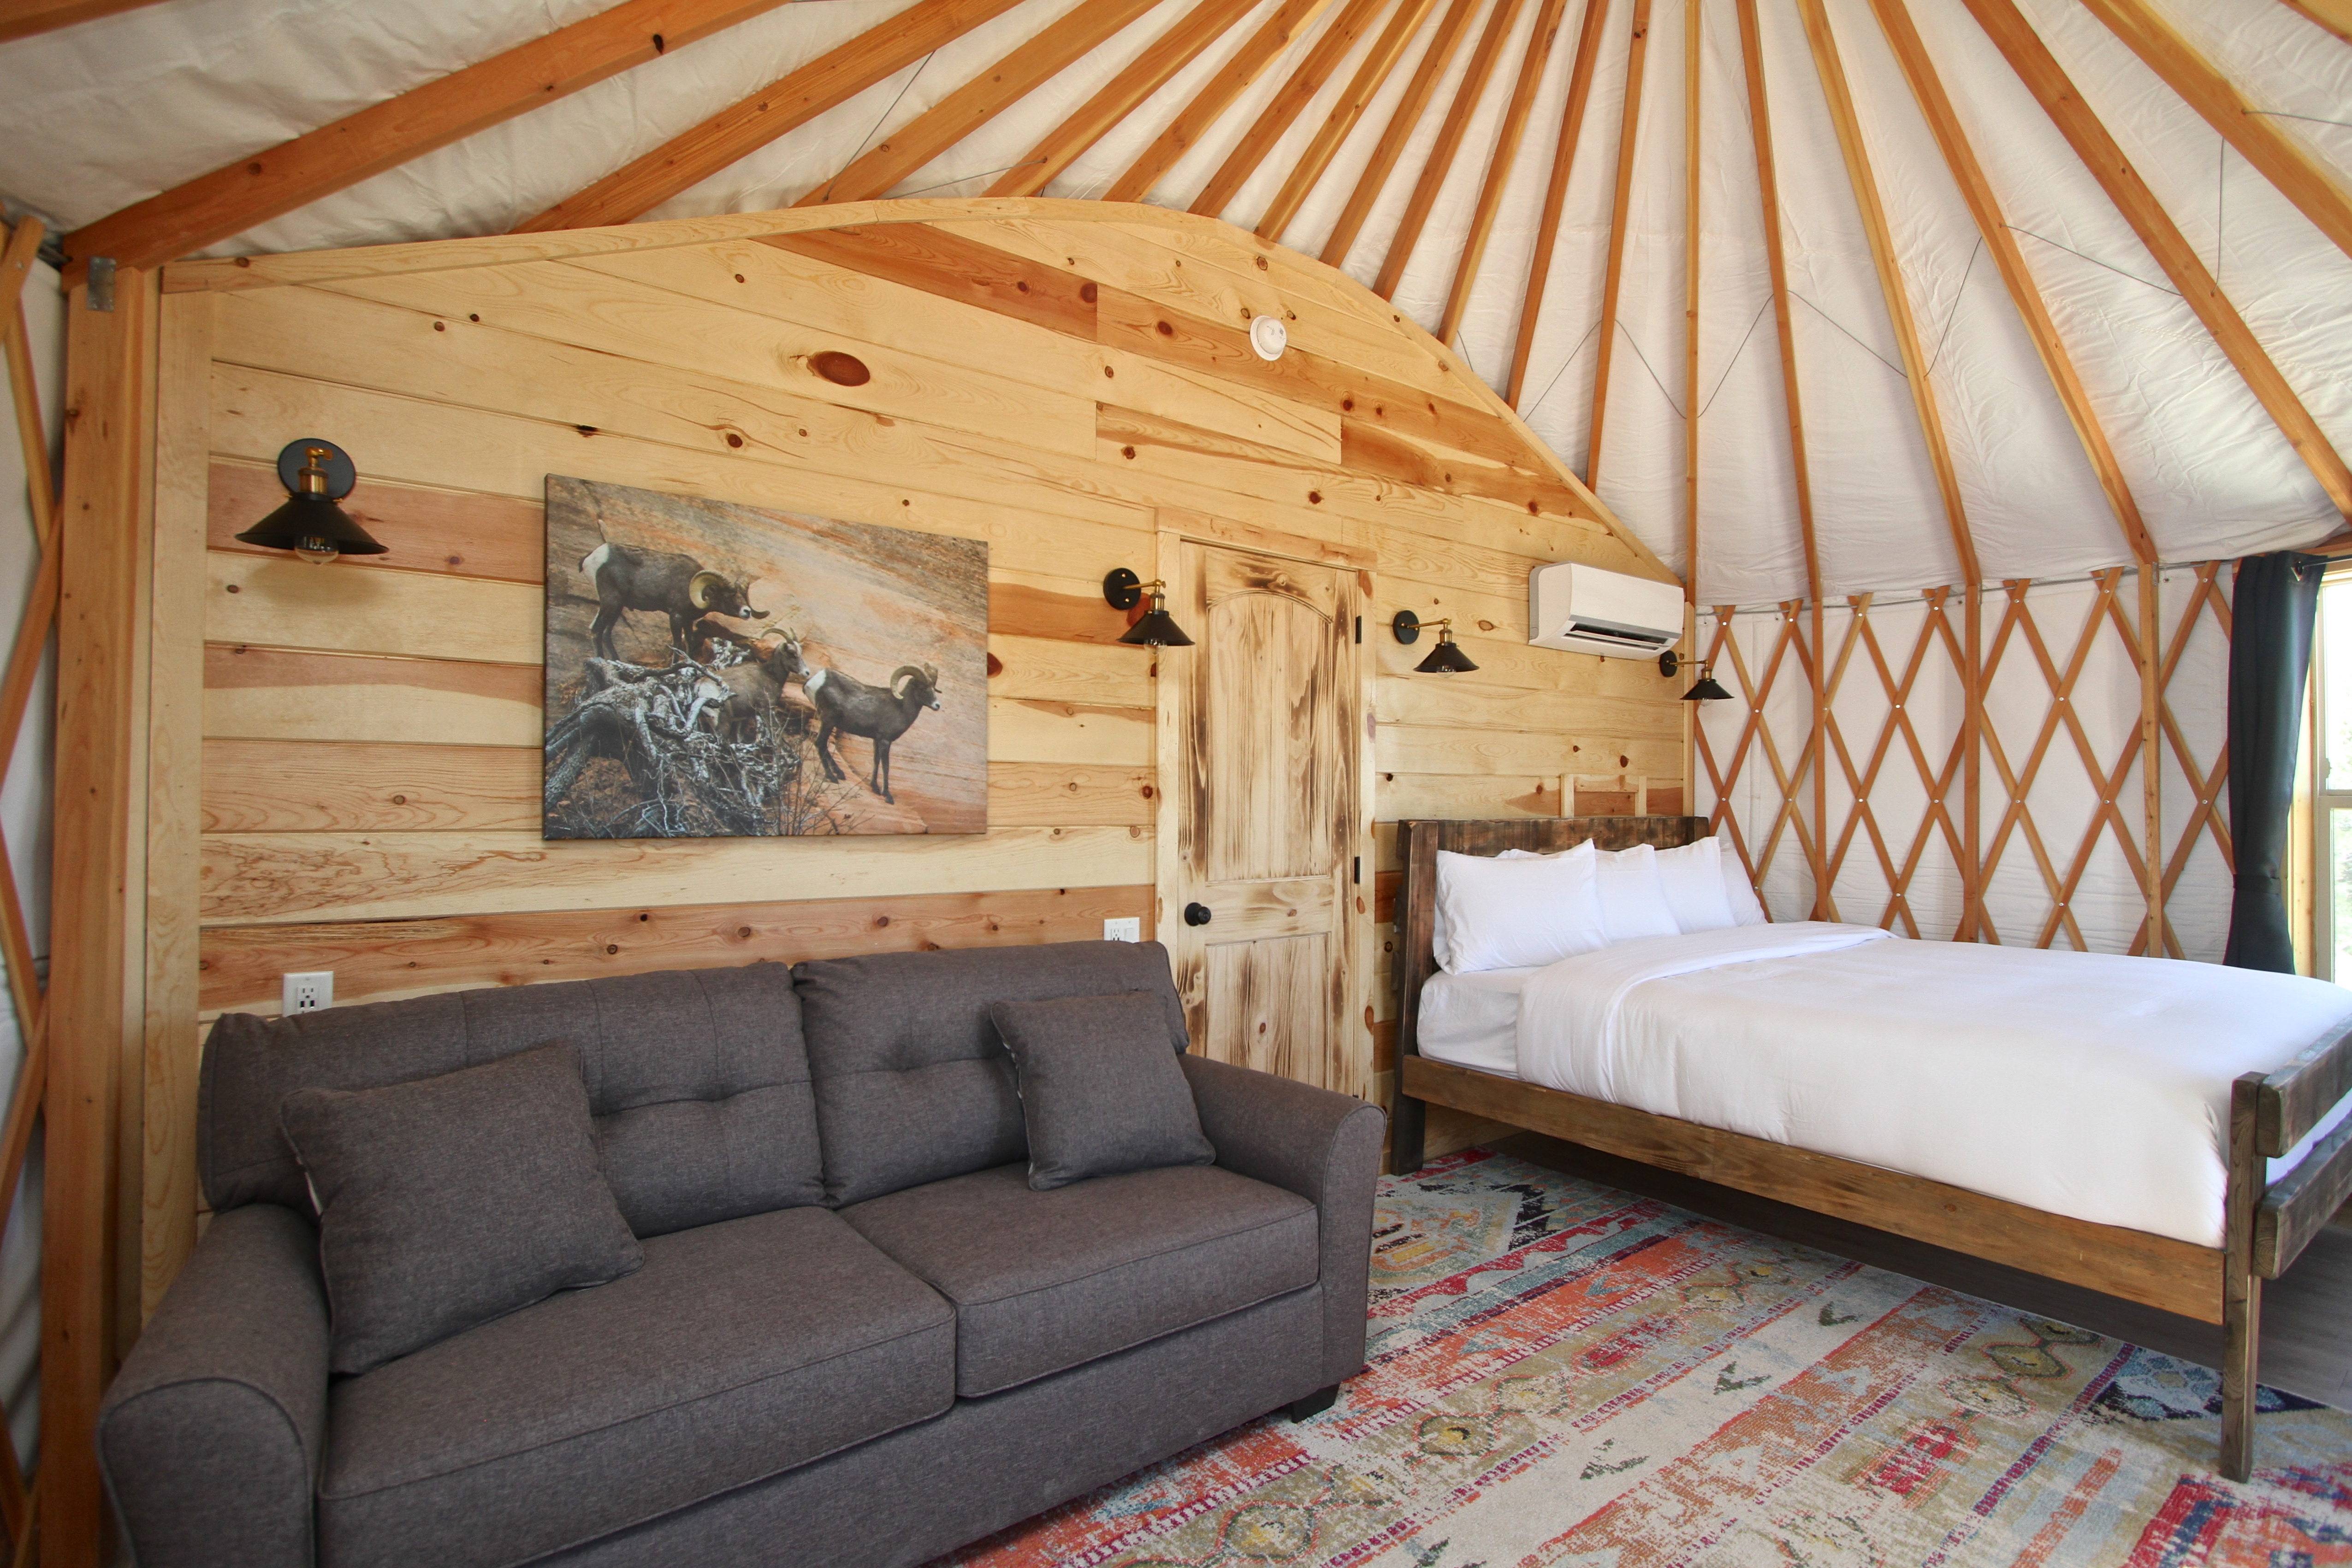 Yurt Bed and Sofabed Left